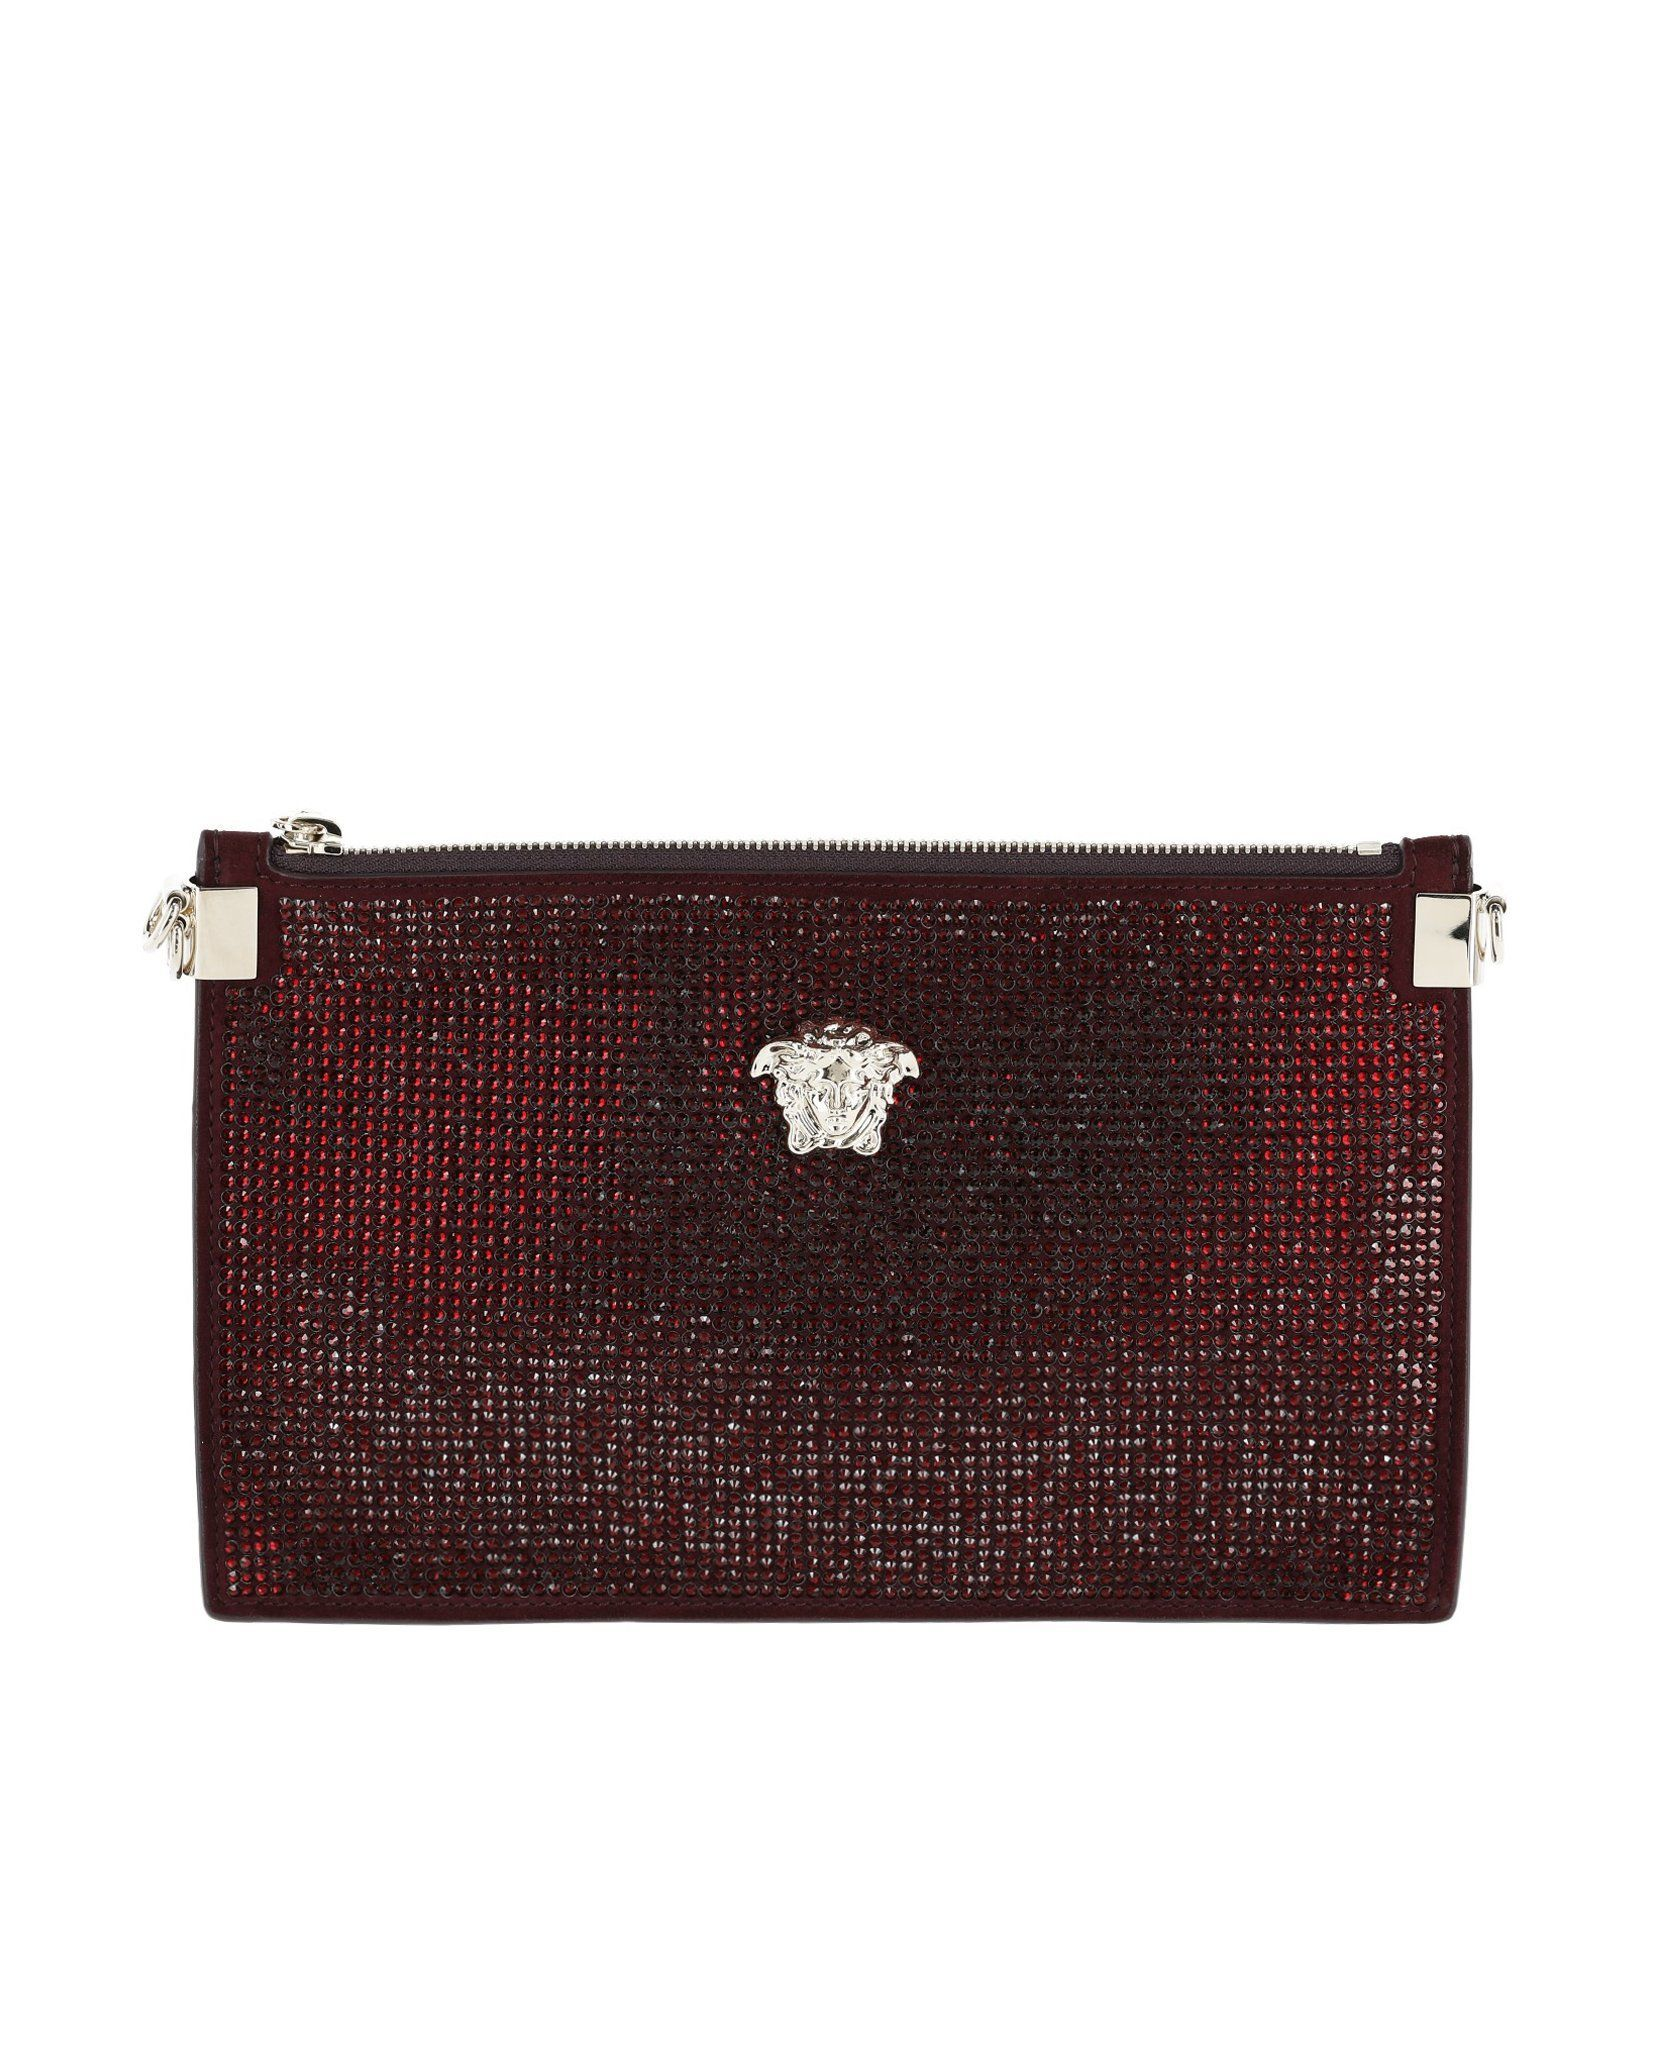 ca7ed7bc3a Versace Crystal Palazzo Evening Pouch | Designer Handbags On Sale ...